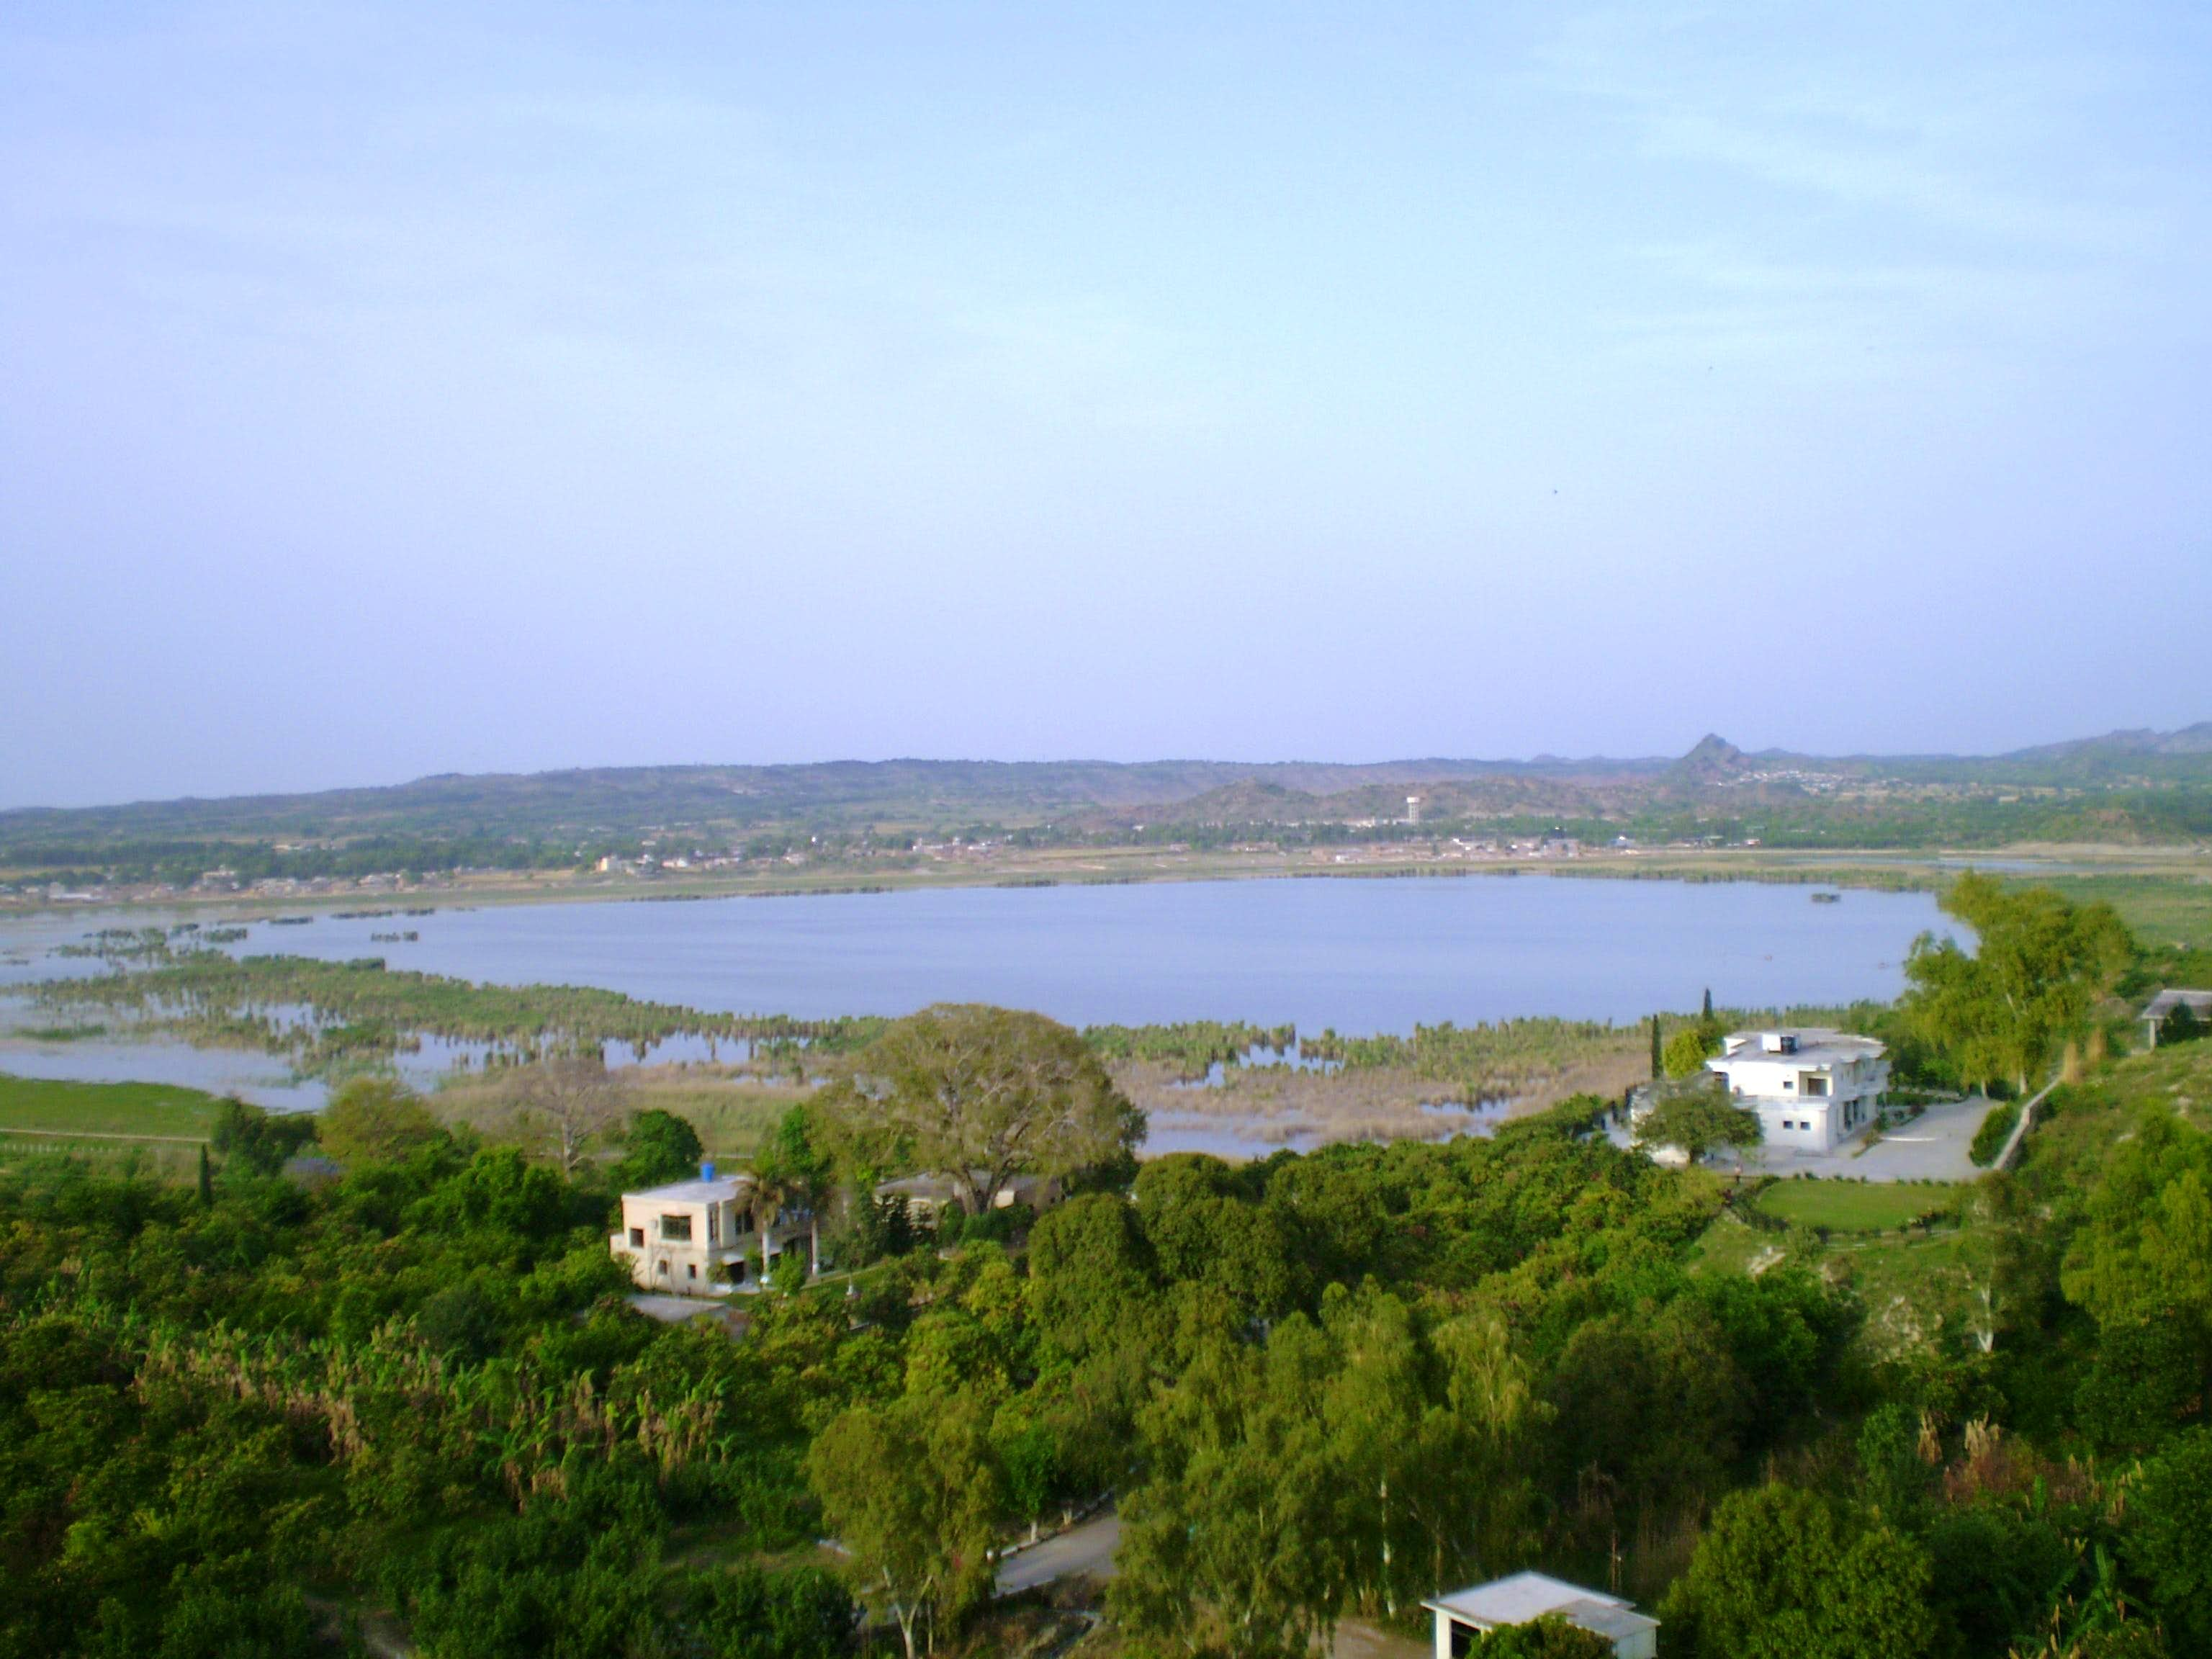 Kalarkahar Lake, Pakistan